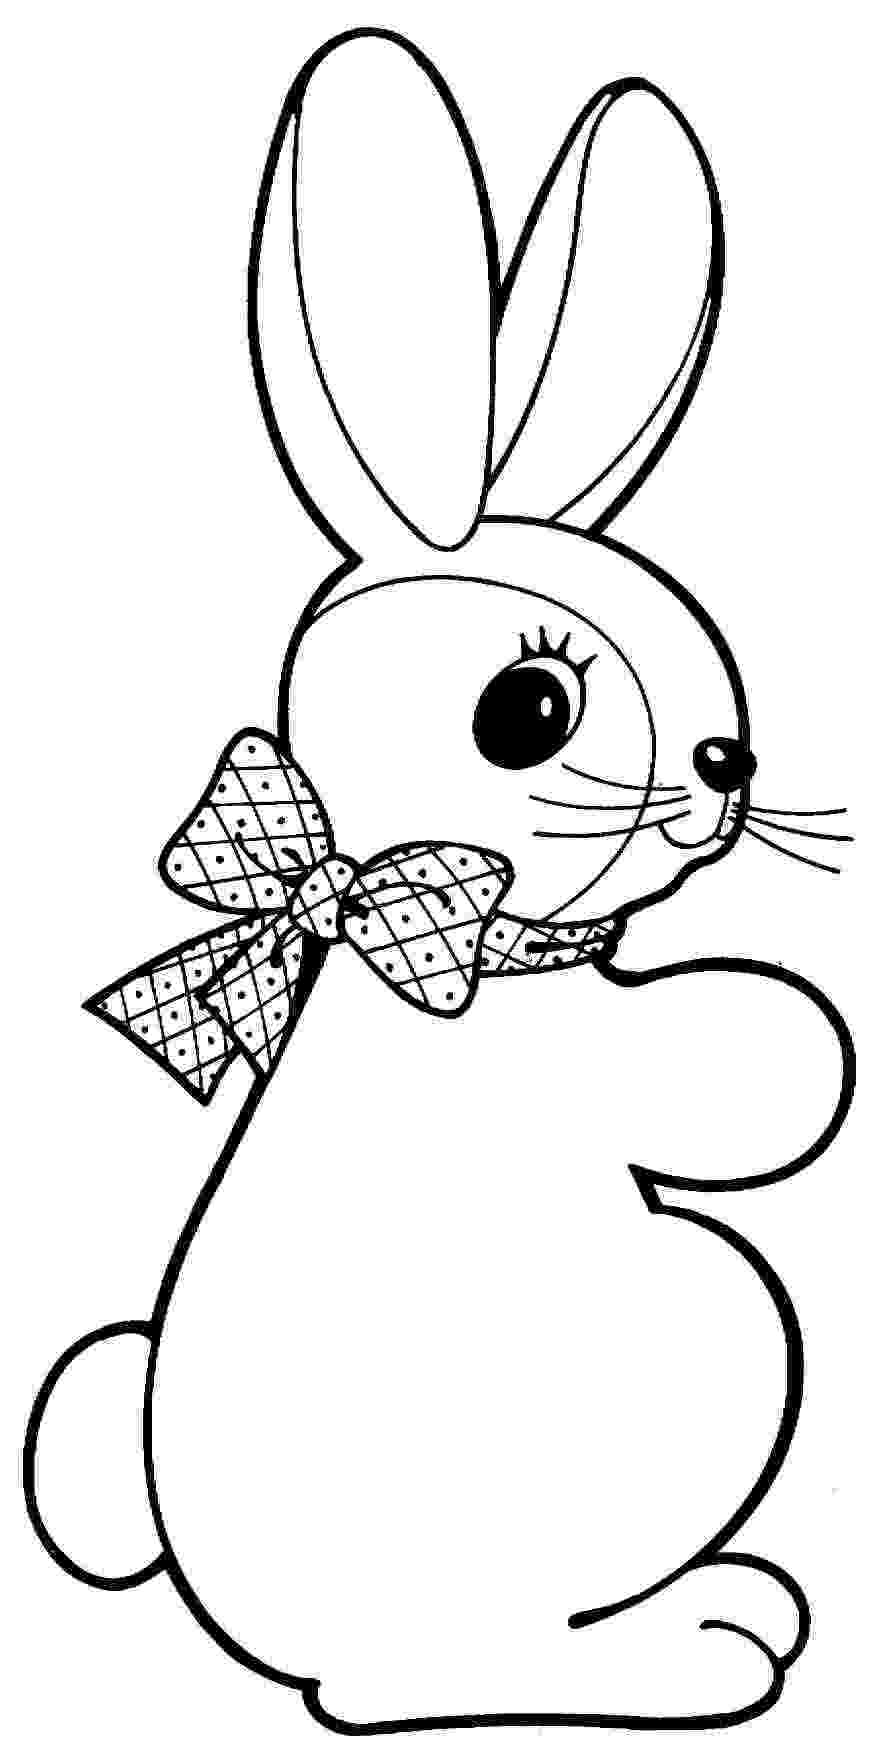 rabbit coloring pages for preschoolers kids page bunny coloring pages printable bunny coloring coloring for preschoolers rabbit pages